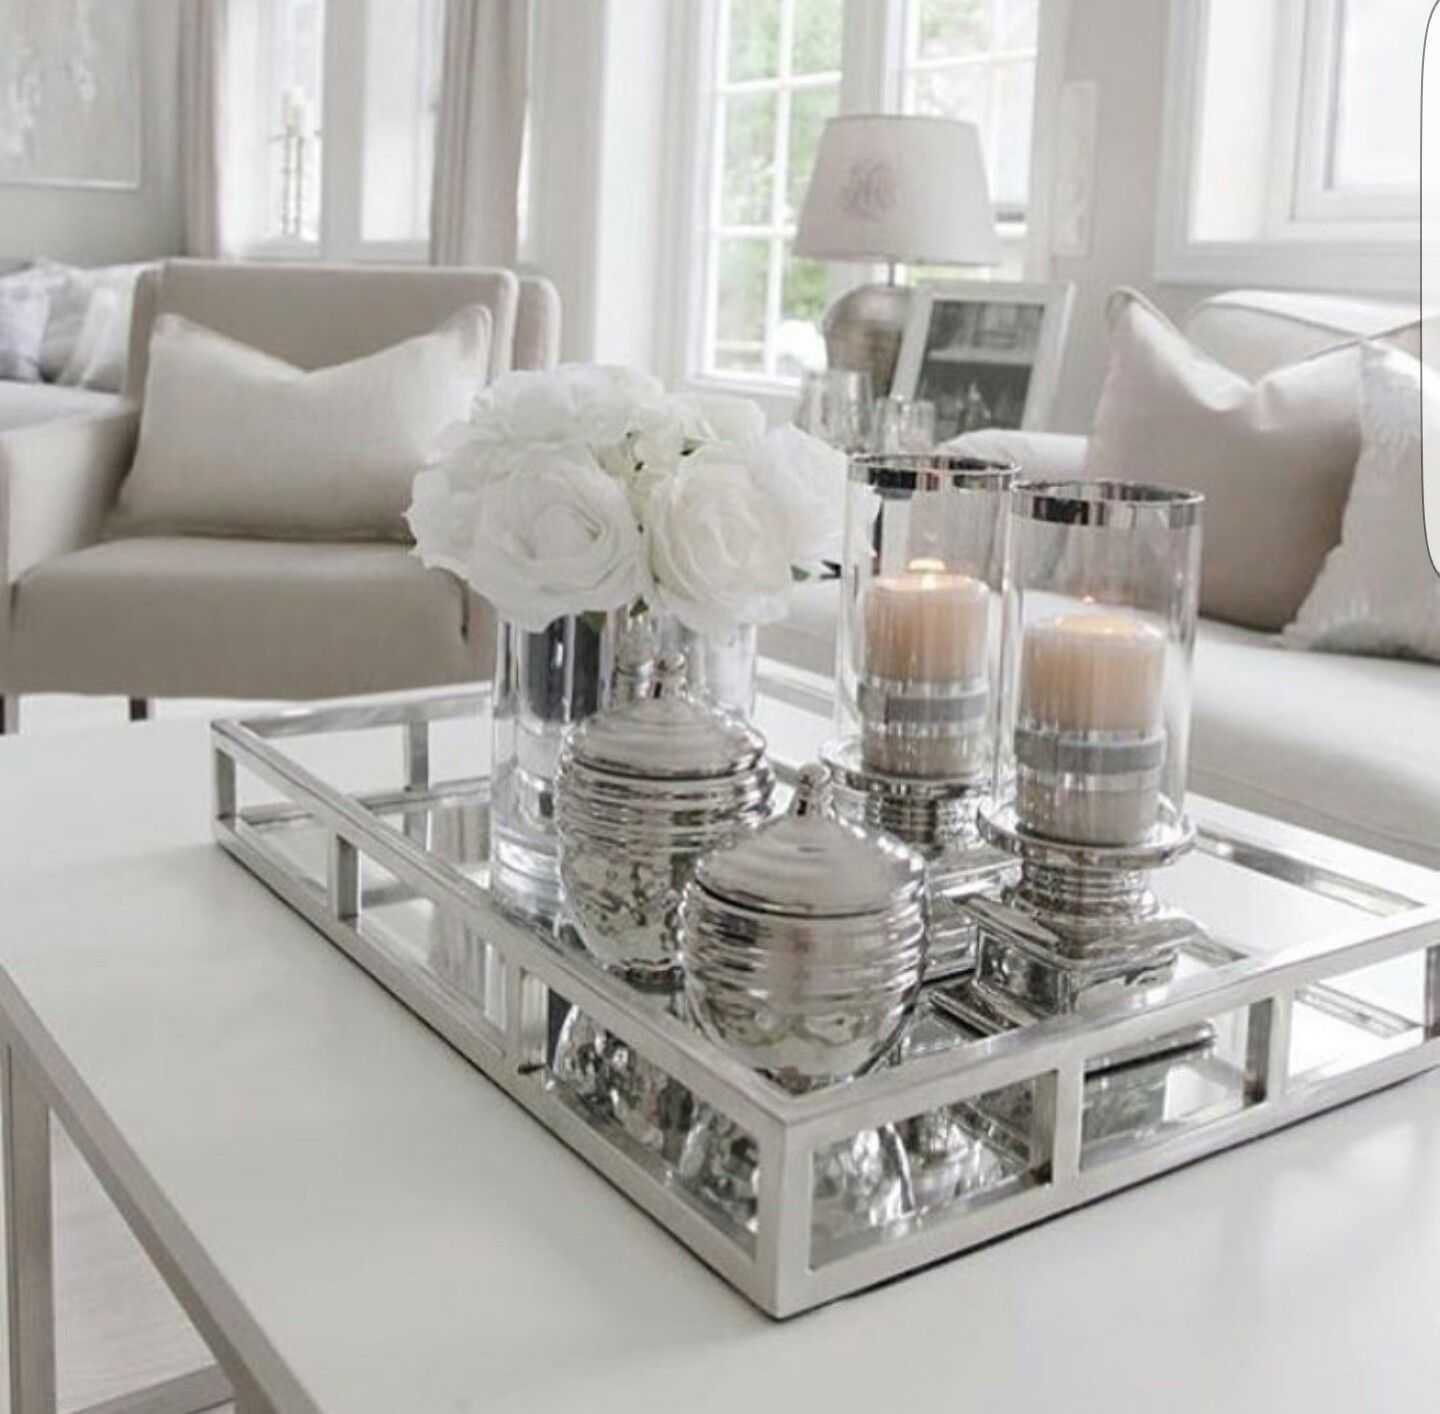 Living room table decorations - White Center Table For The Living Room